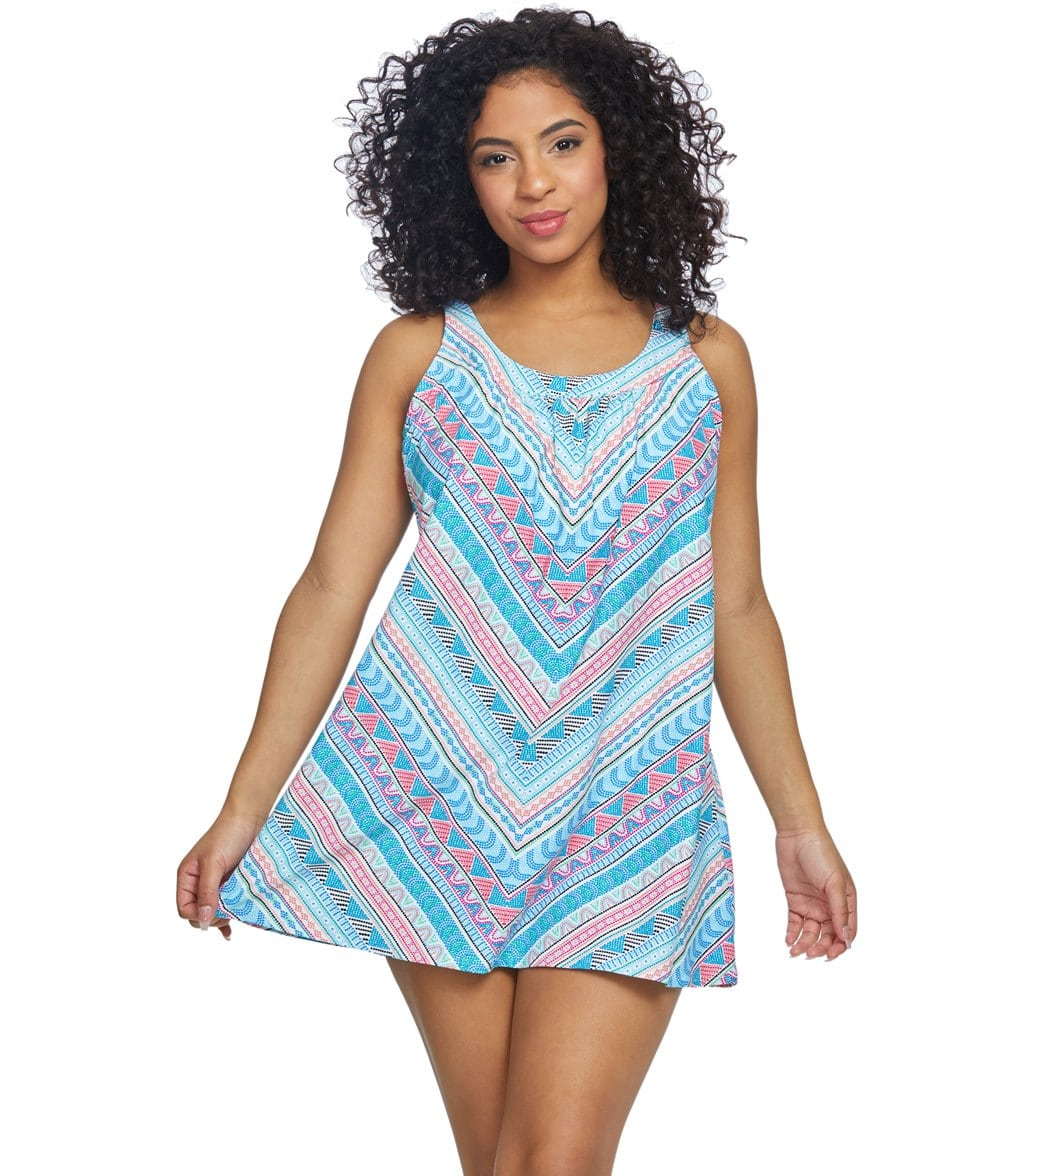 Turquoise Swim Dress